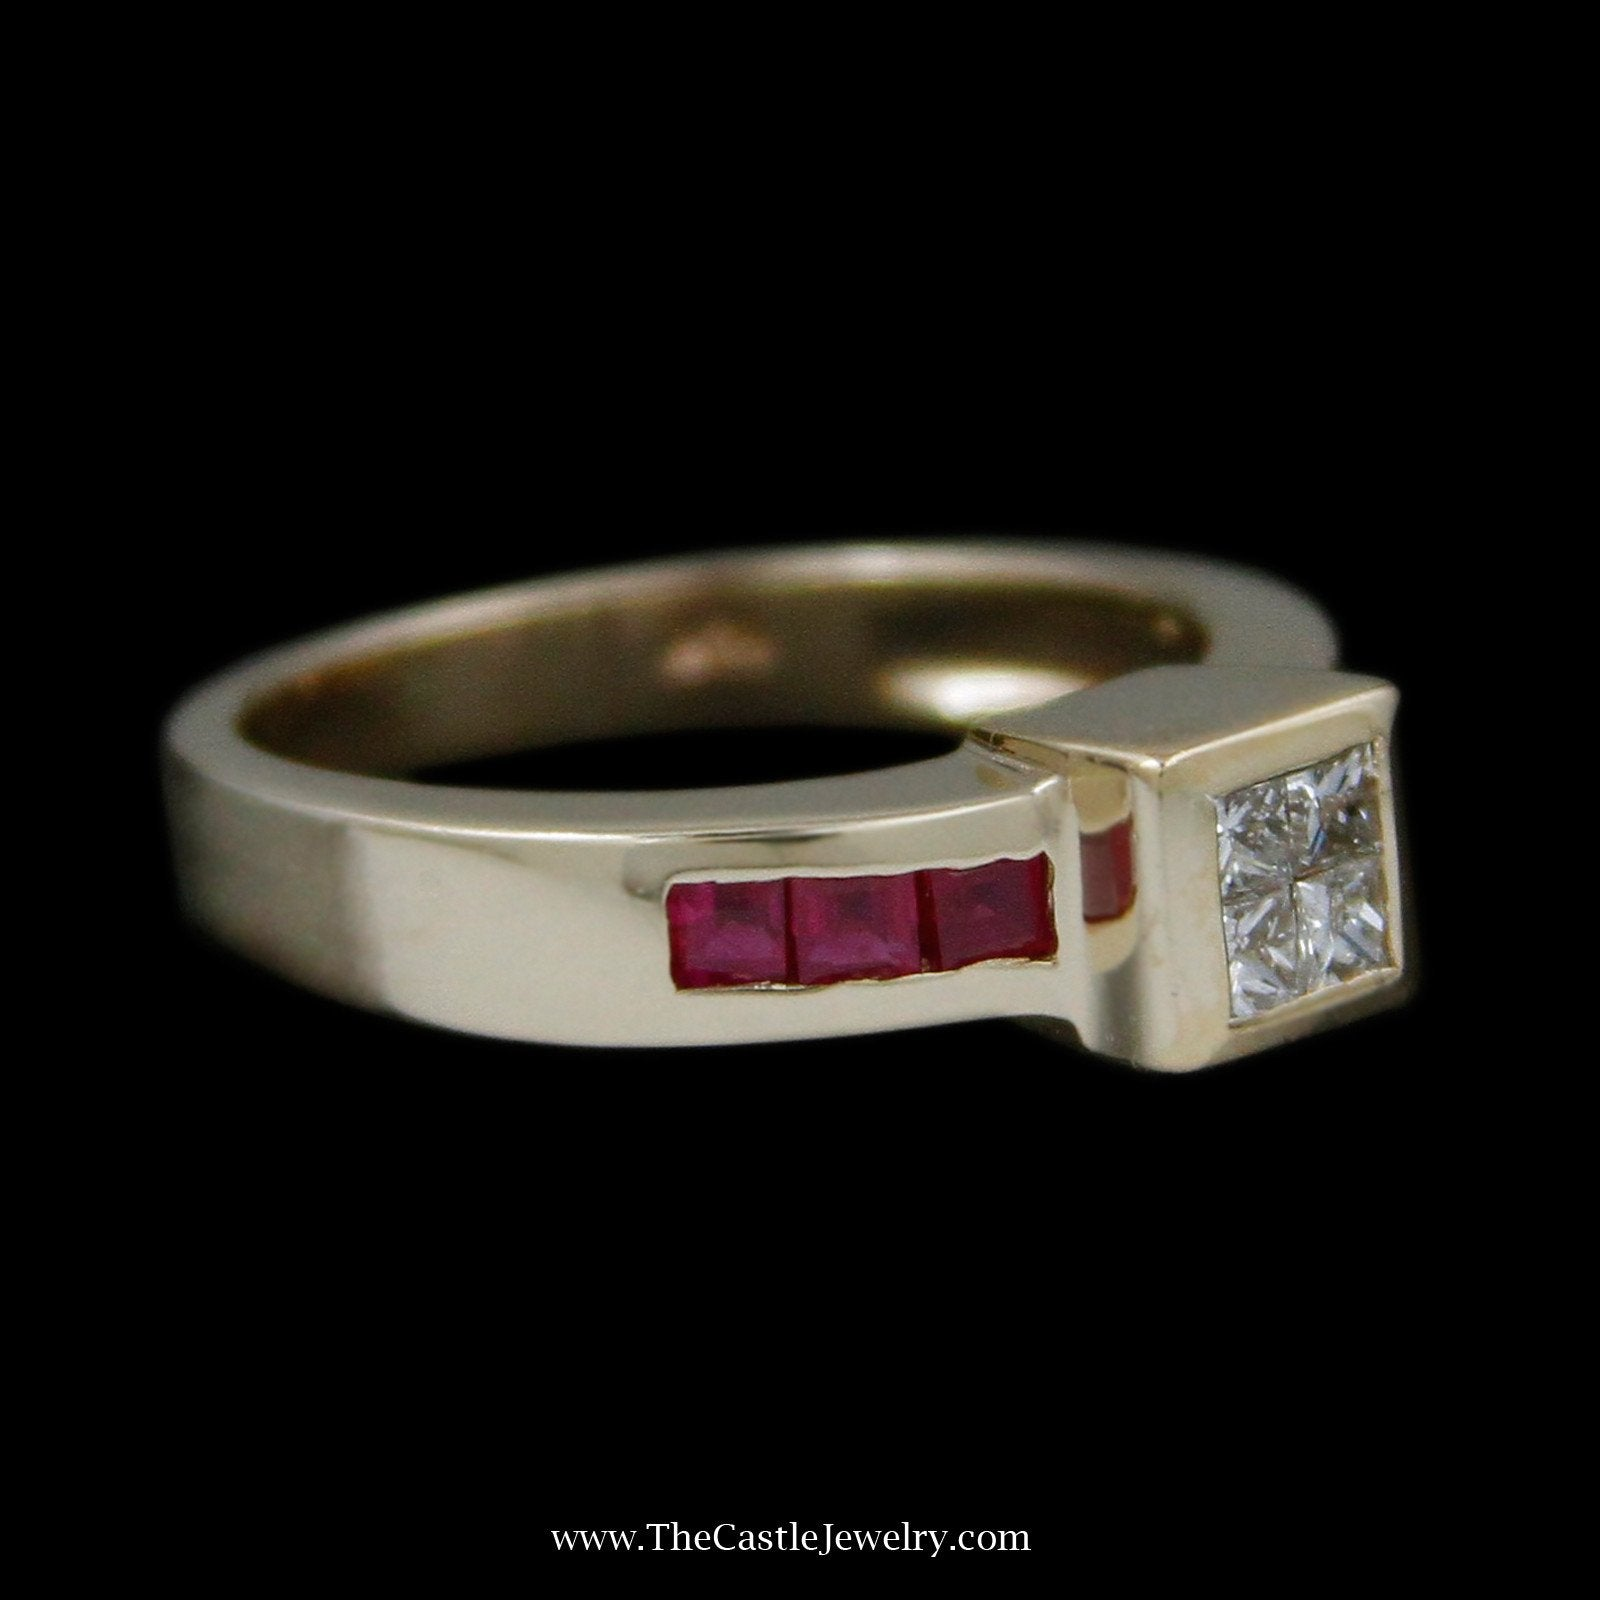 Invisible Set Ring with 4 Princess Cut Diamonds & Channel Set Square Rubies